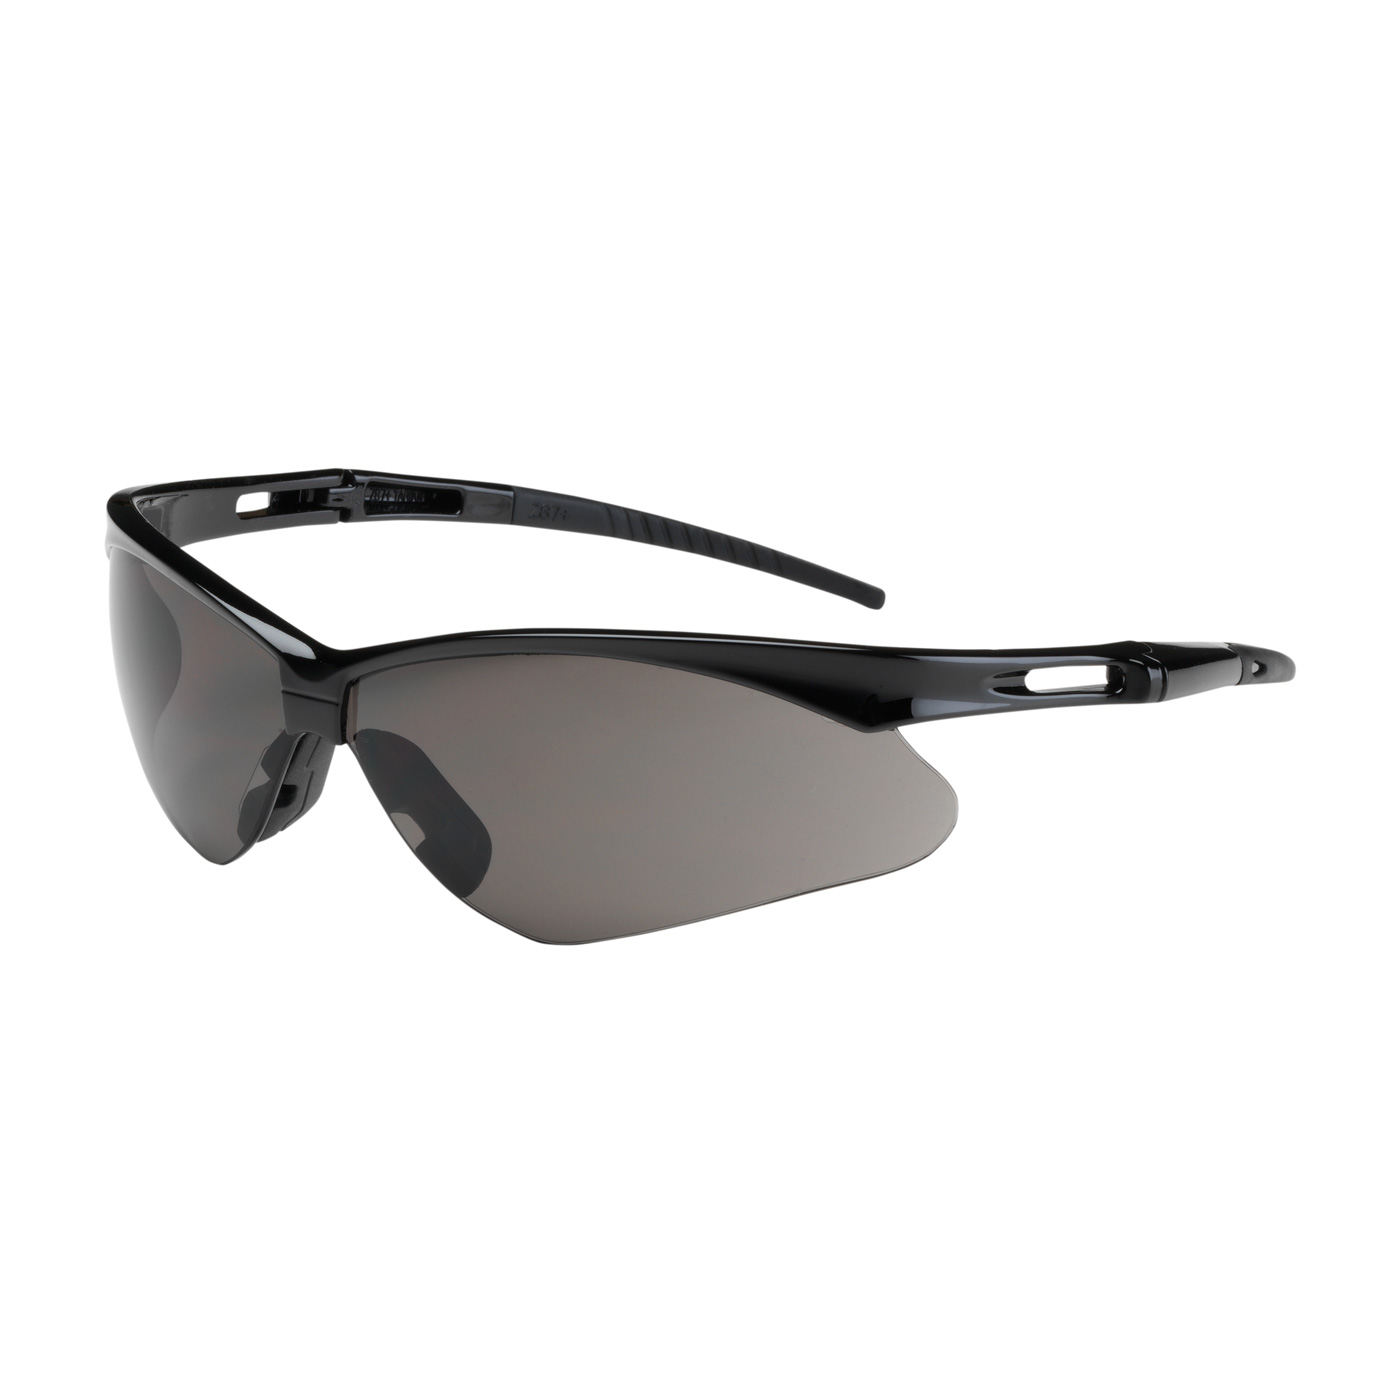 Bouton® Anser™ Optical 250-AN-10521 Dual Safety Glasses, FogLess® 3Sixty™, Gray Lens, Semi-Rimless Frame, Black, Polycarbonate/PVC Frame, Polycarbonate Lens, ANSI Z87.1-2015